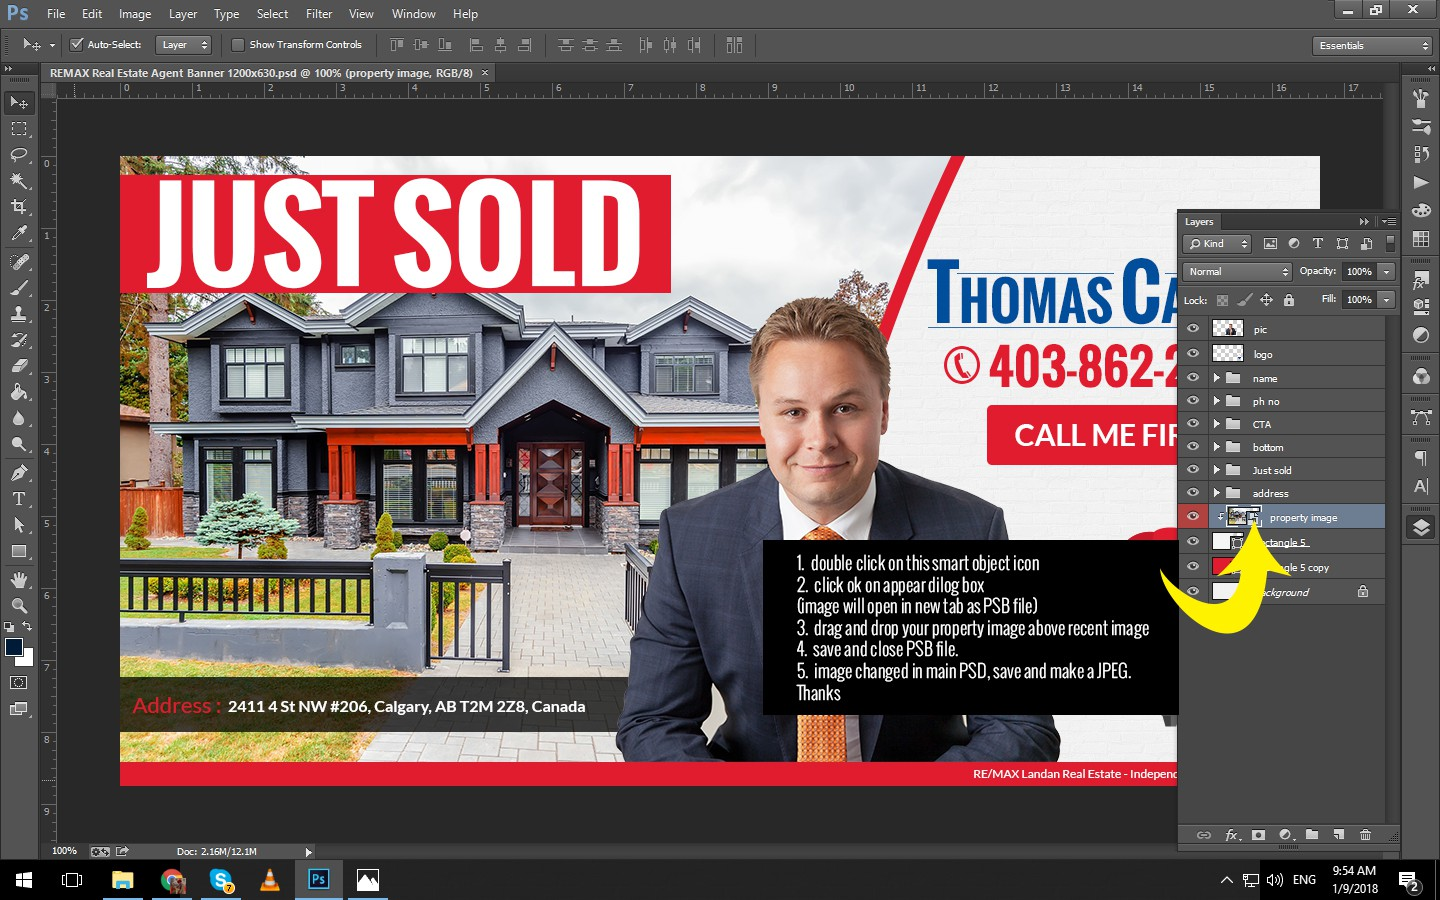 Banner Ad for RE/MAX Real Estate Agent